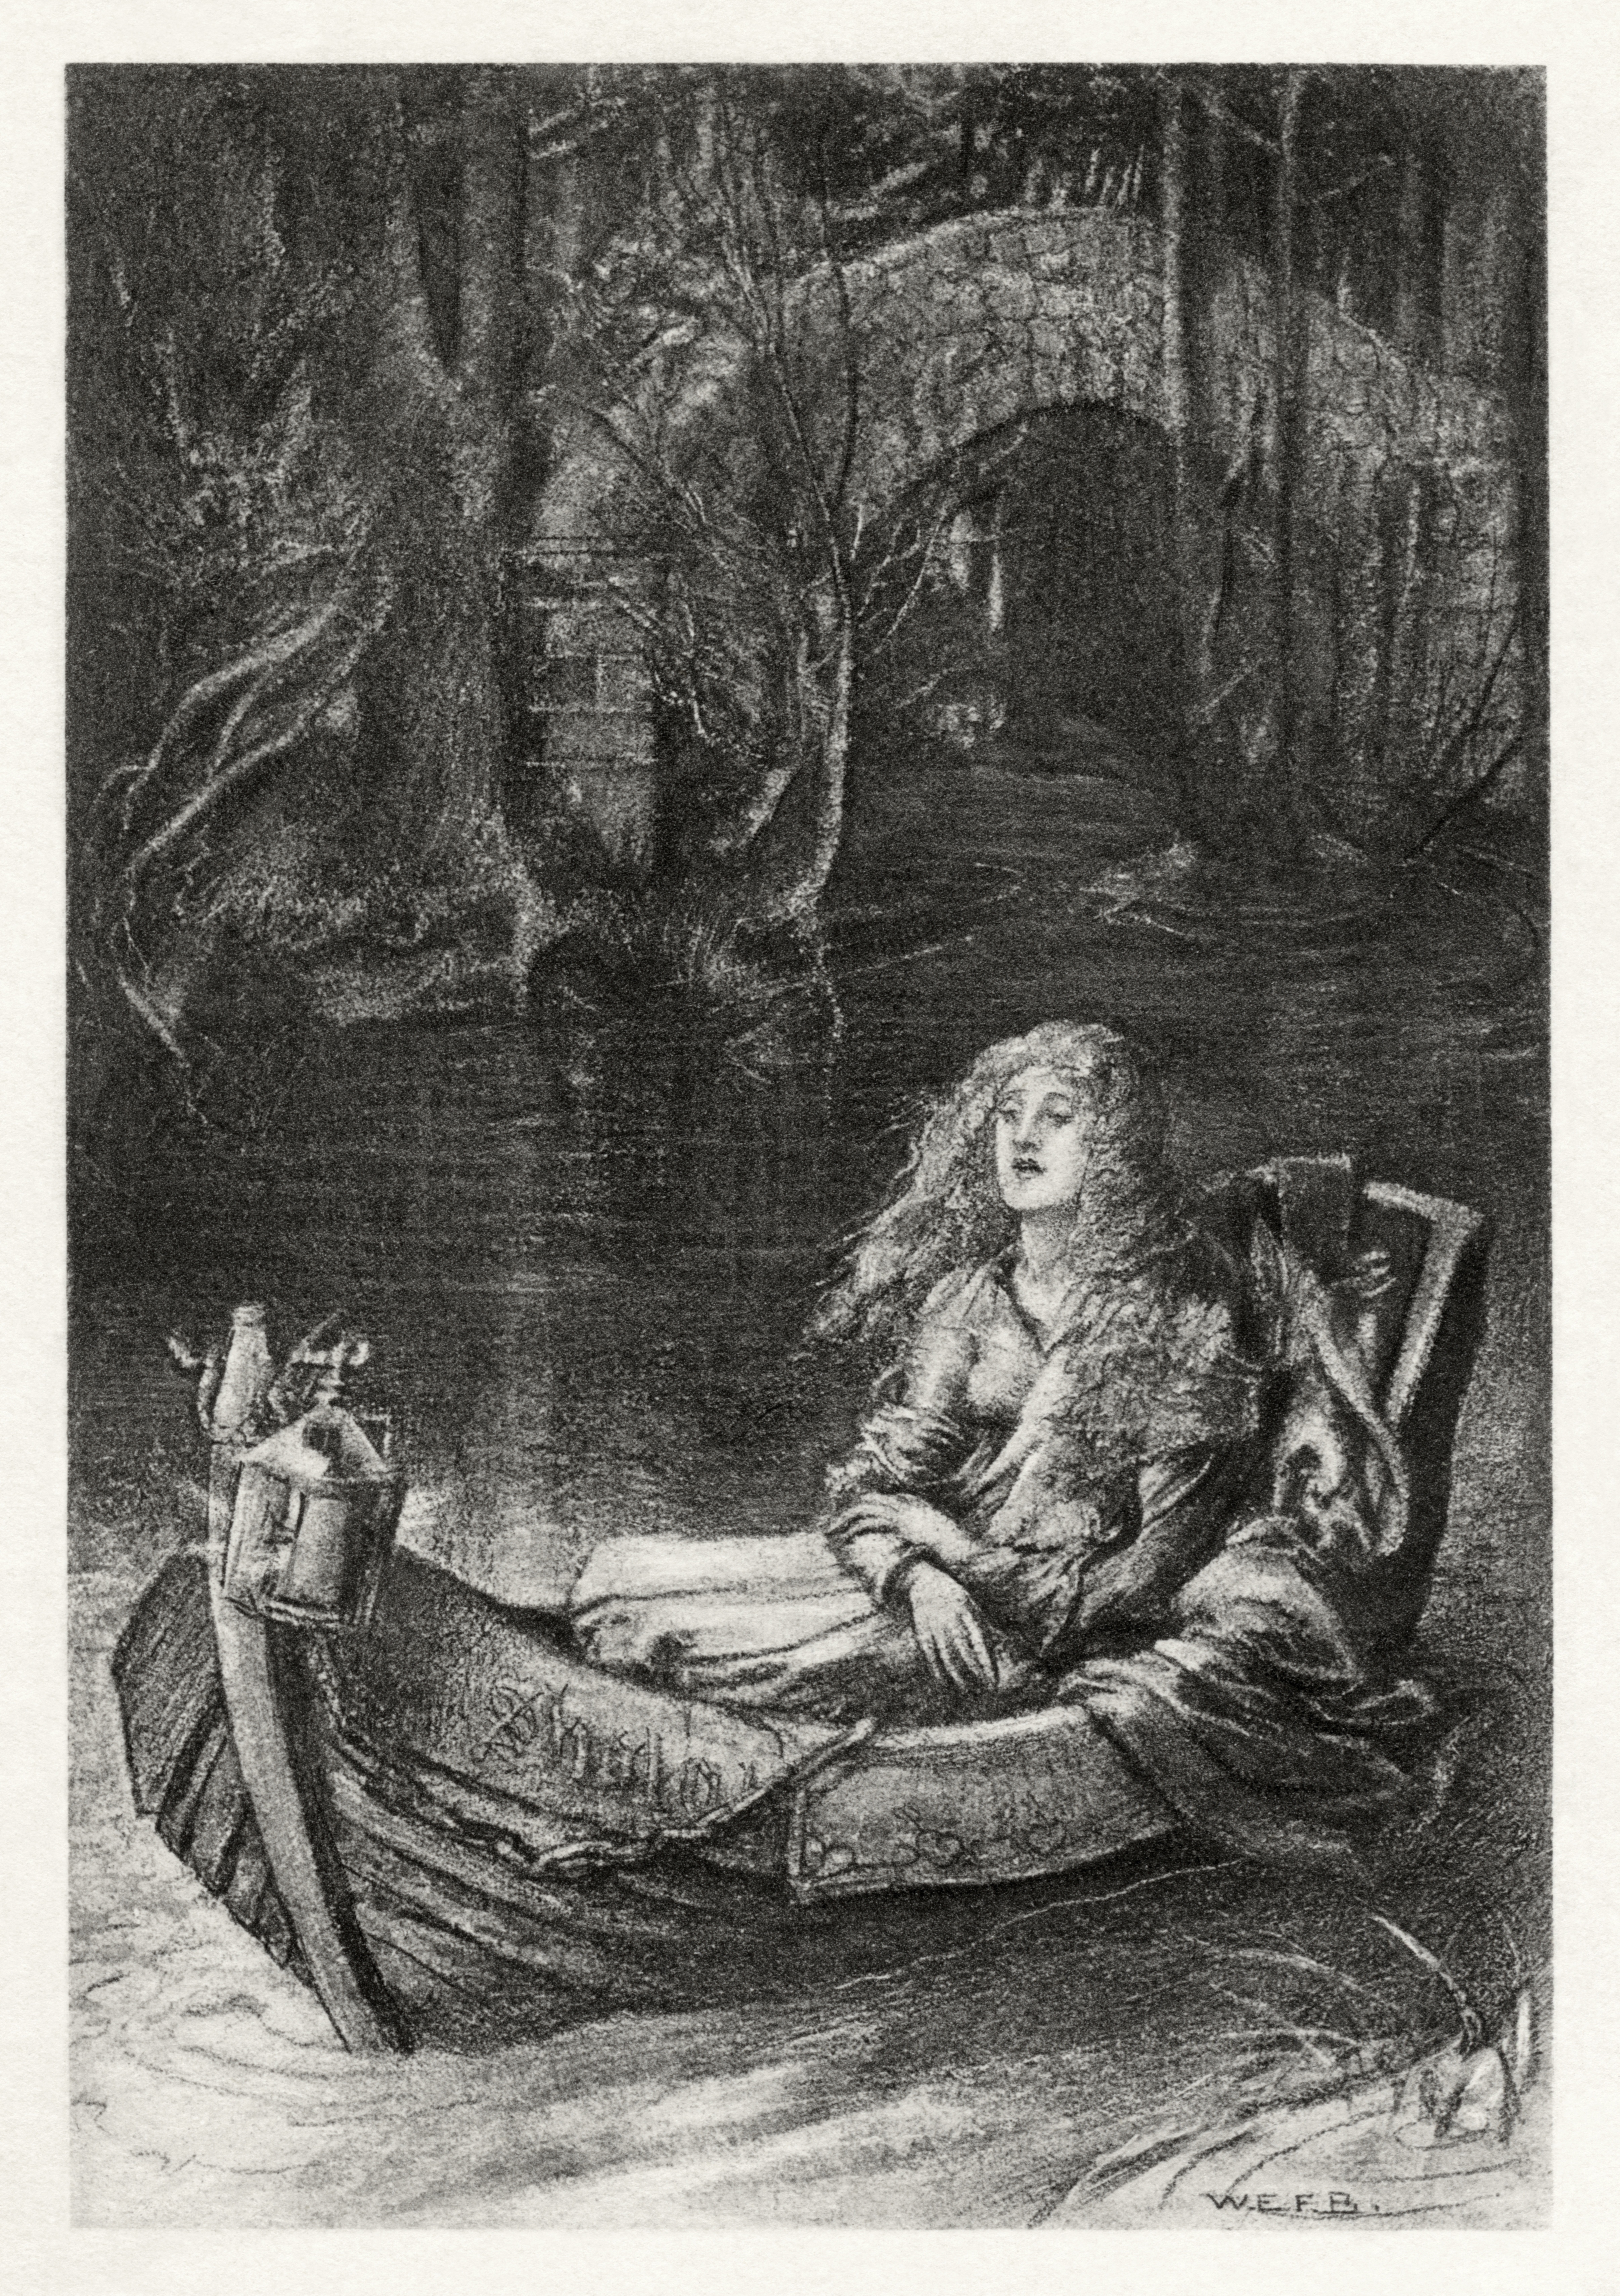 tennyson the lady of shalott Meet alfred, lord tennyson, the leading poet of the victorian age, on biographycom his lasting works include 'crossing the bar' and 'the lady of shalott.